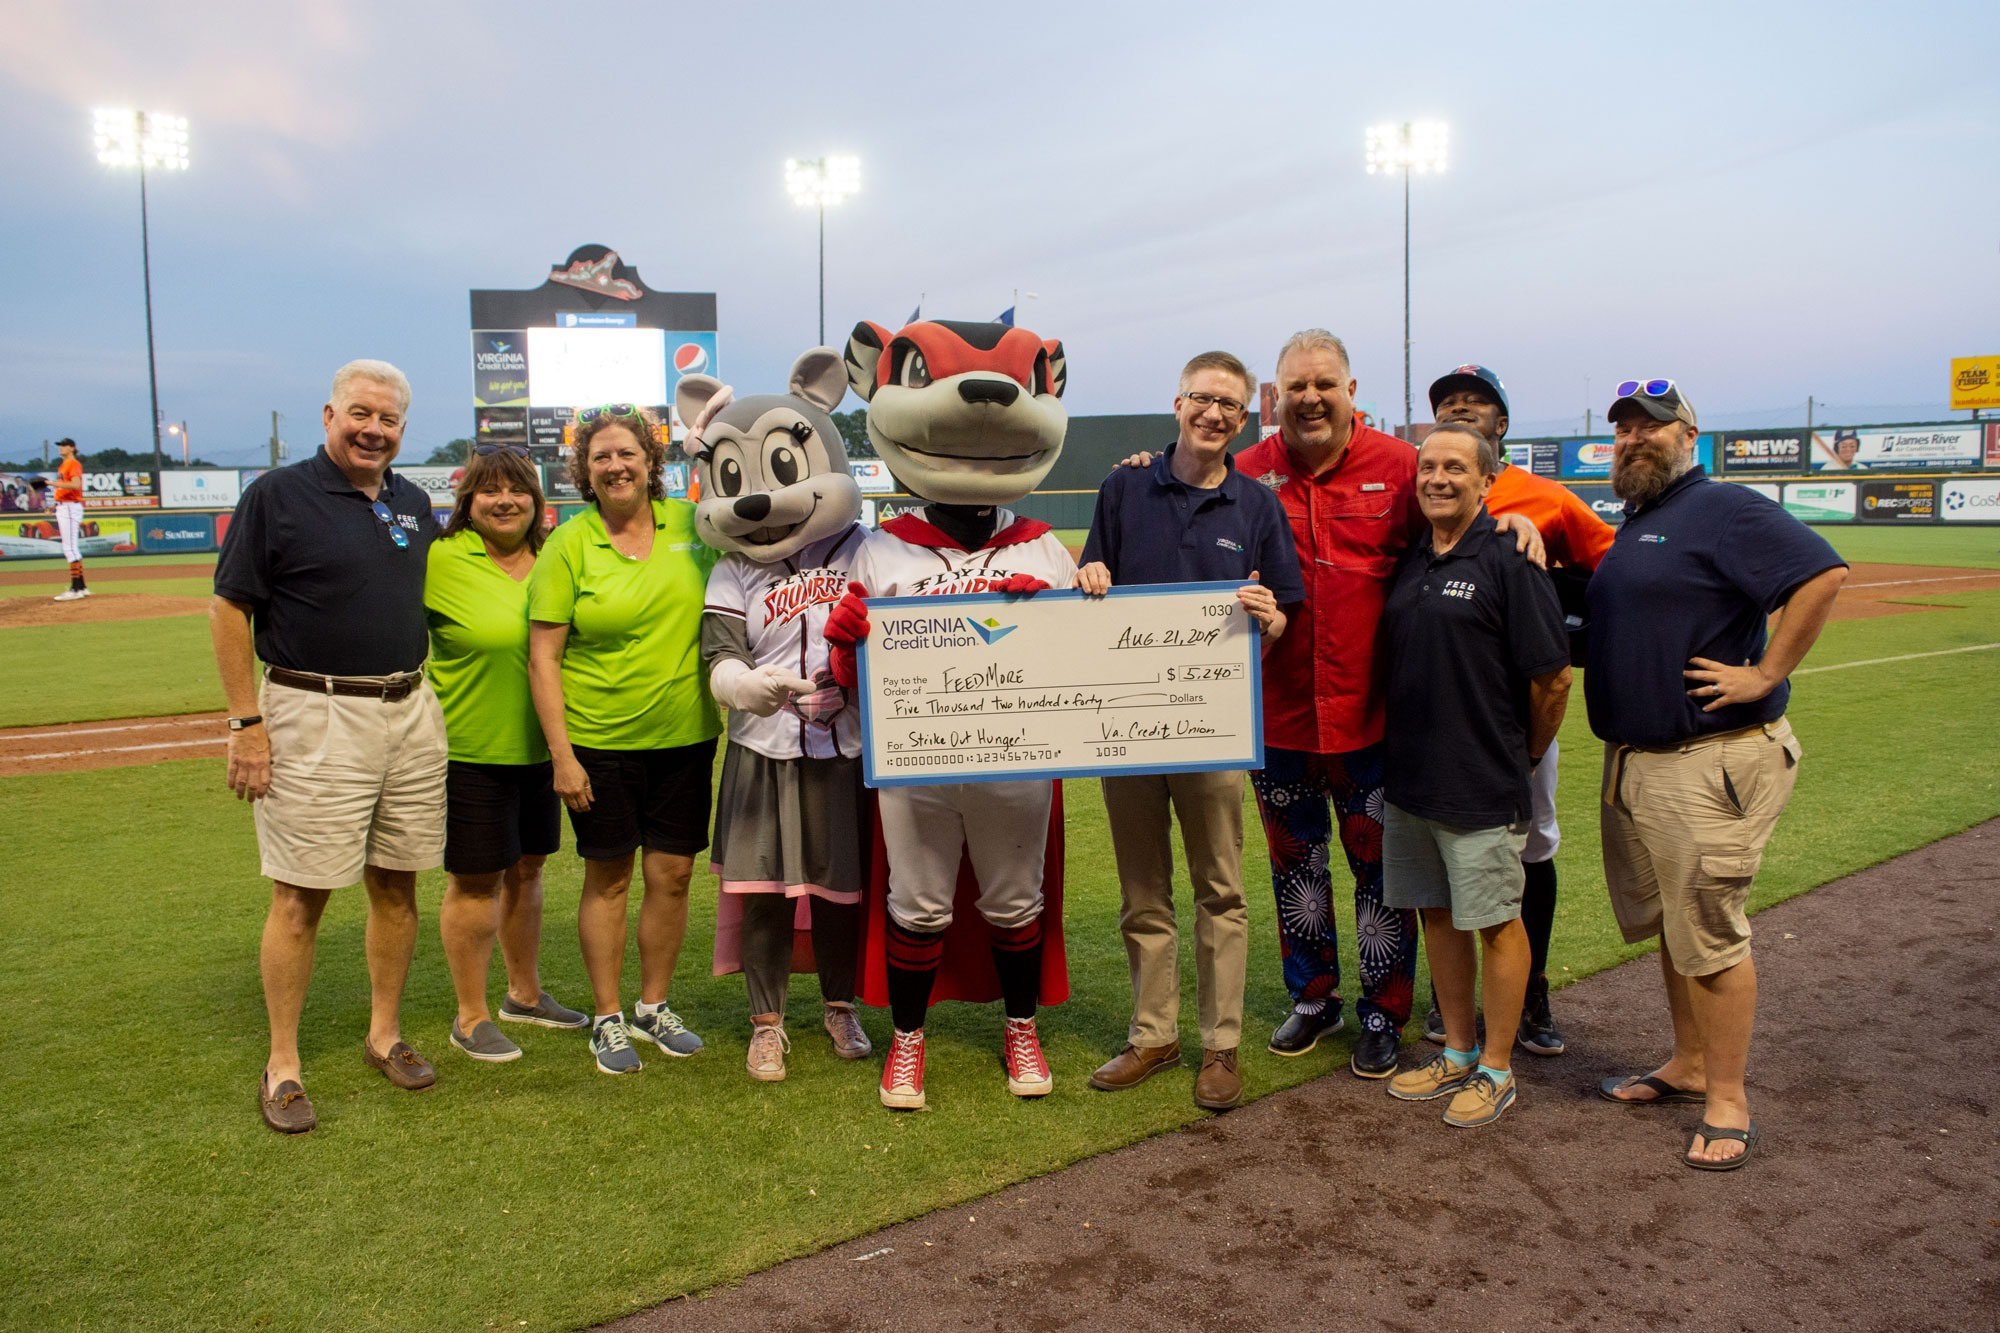 Feed More + VACU Strike Out Hunger Richmond Flying Squirrels 2019